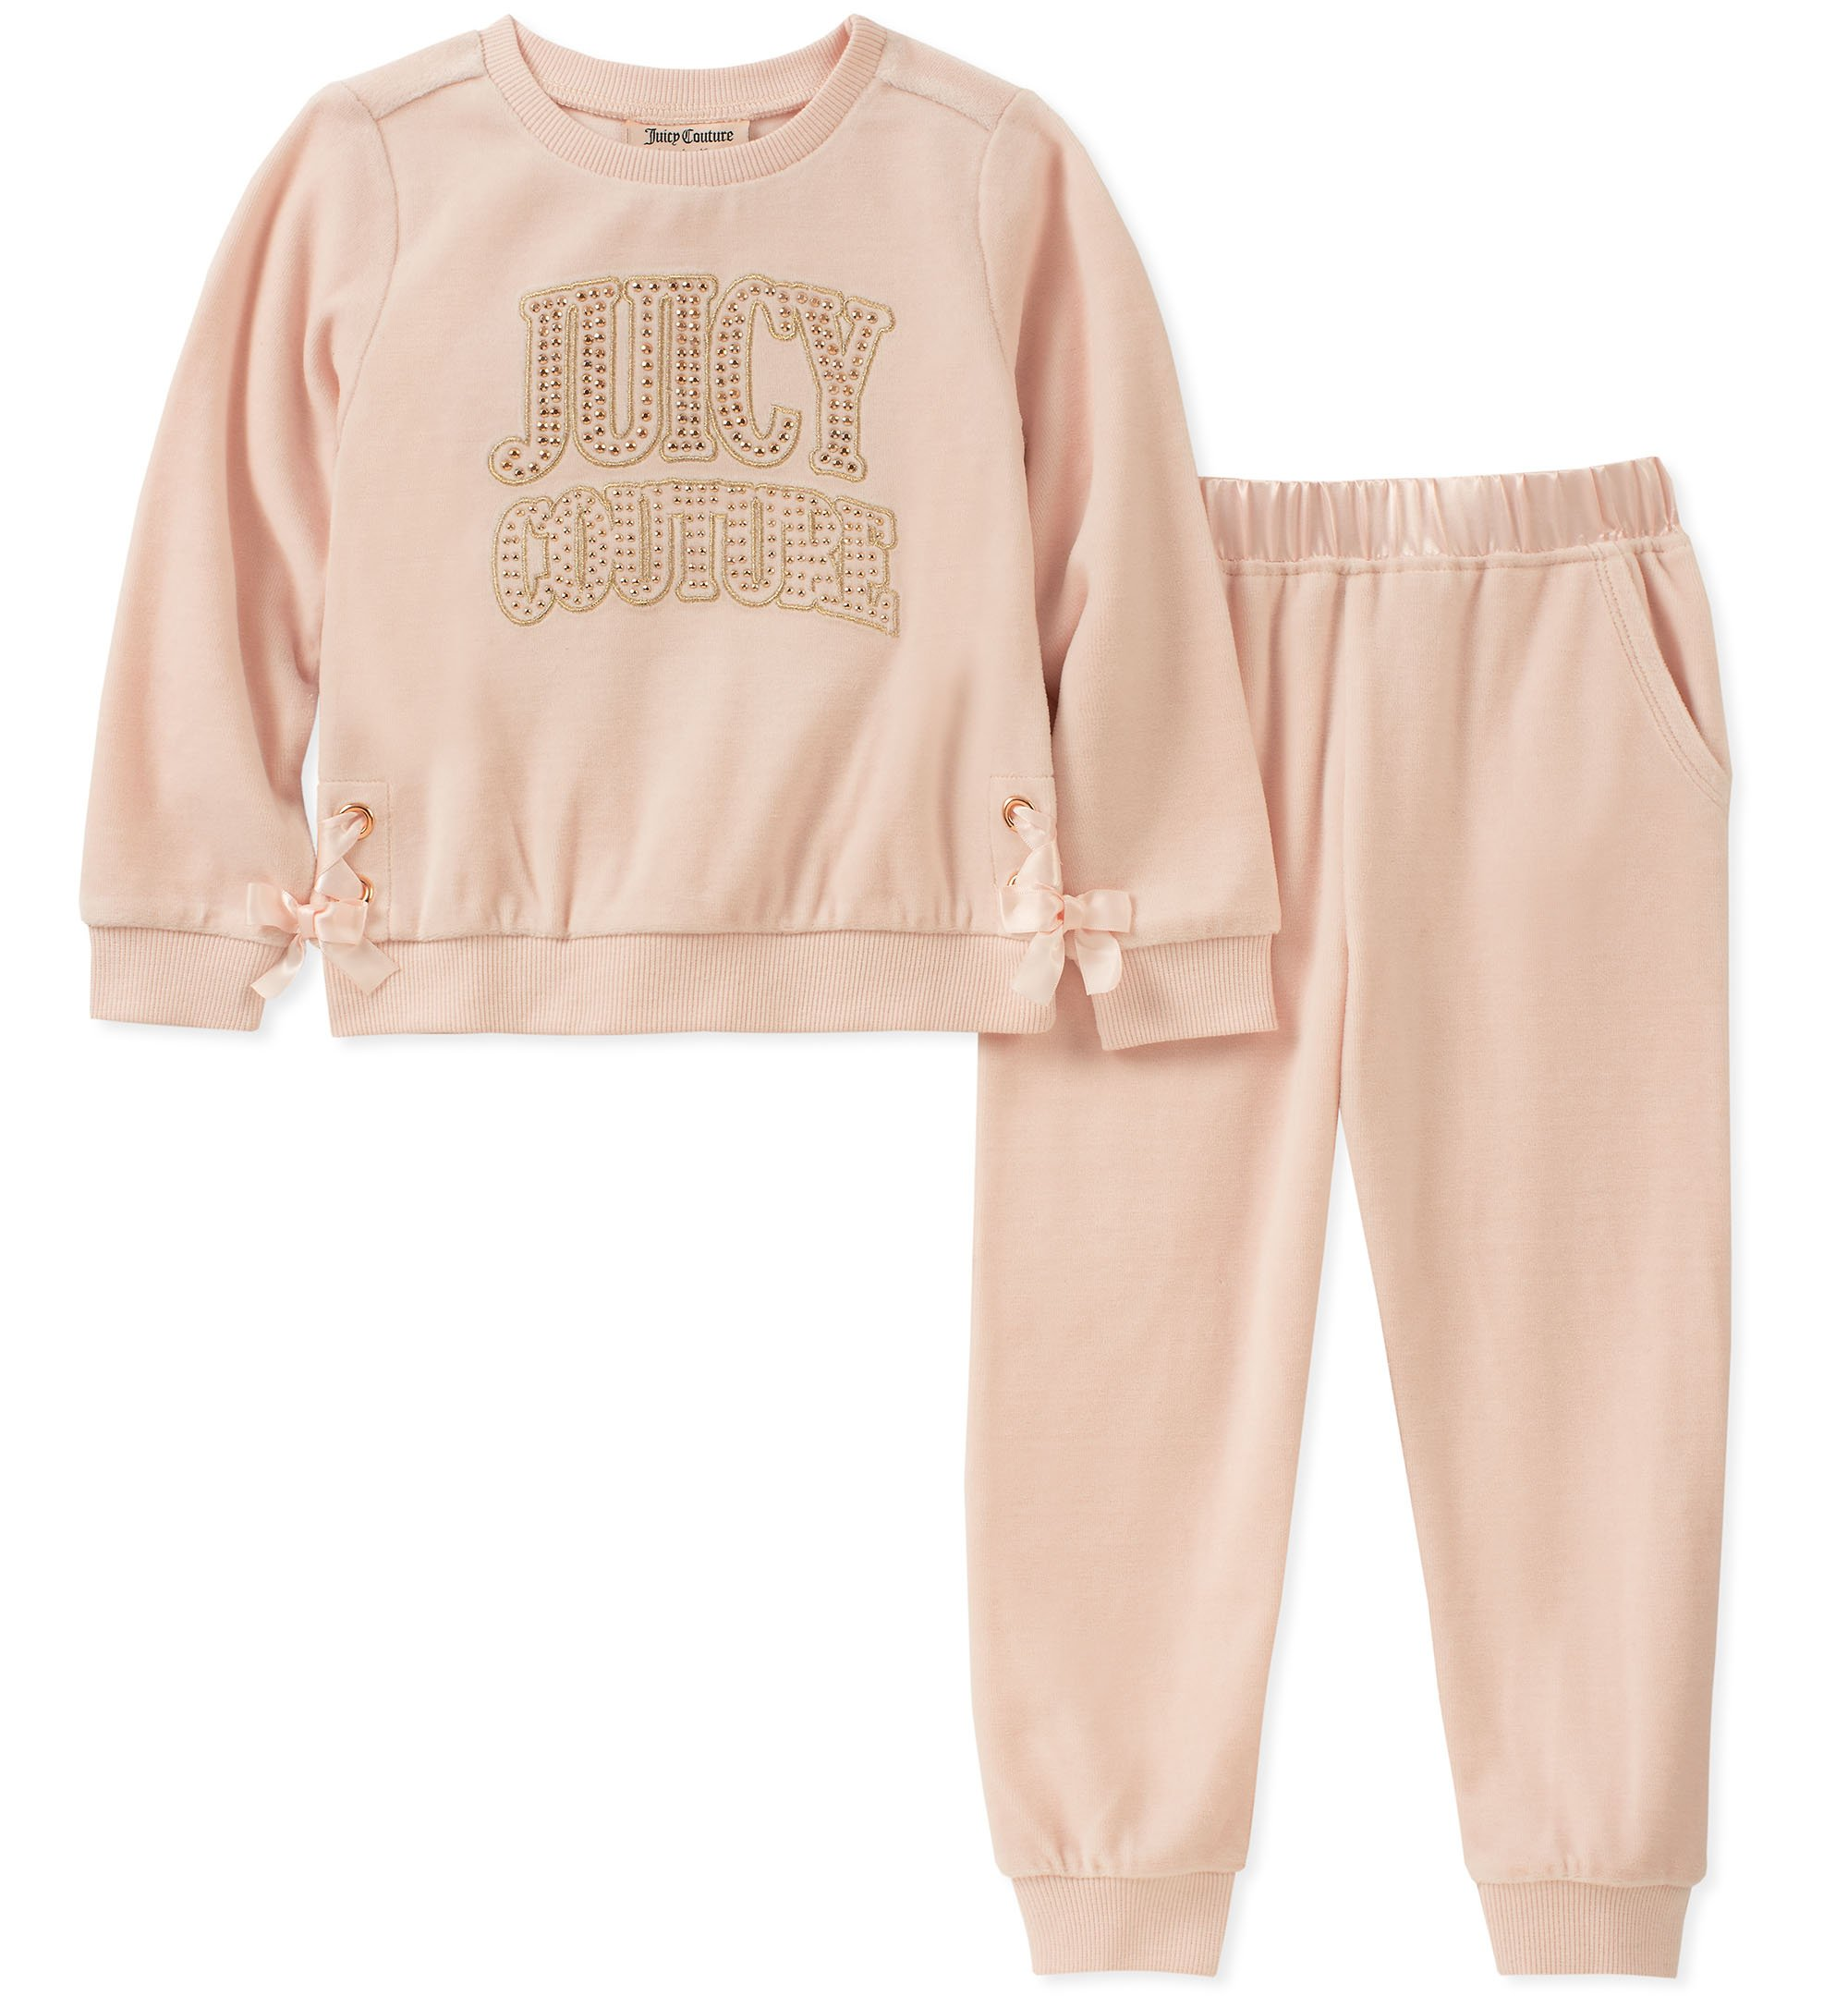 Juicy Couture Girls' Big 2 Pieces Pant Set - Velour, Rose, 7